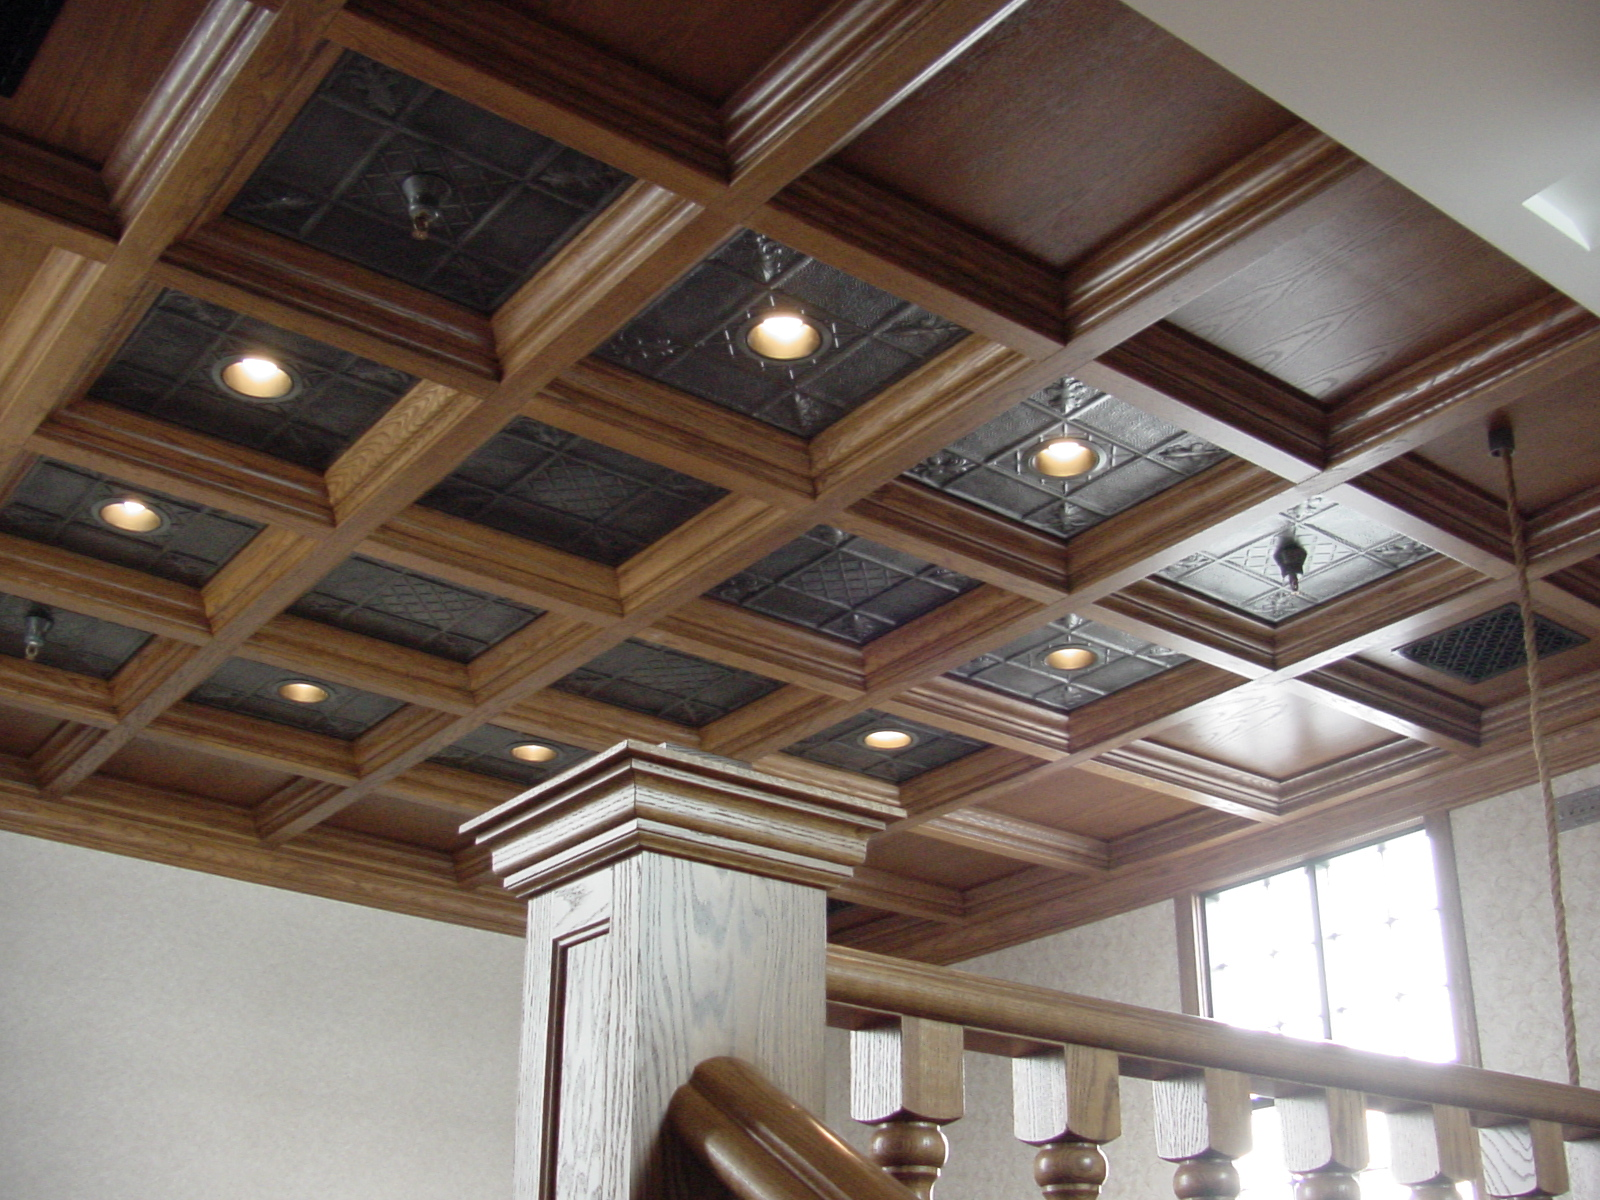 Wood Ceiling in Loft with Tin Panels * WoodGridu00ae Coffered Ceilings by Midwestern Wood Products Co.